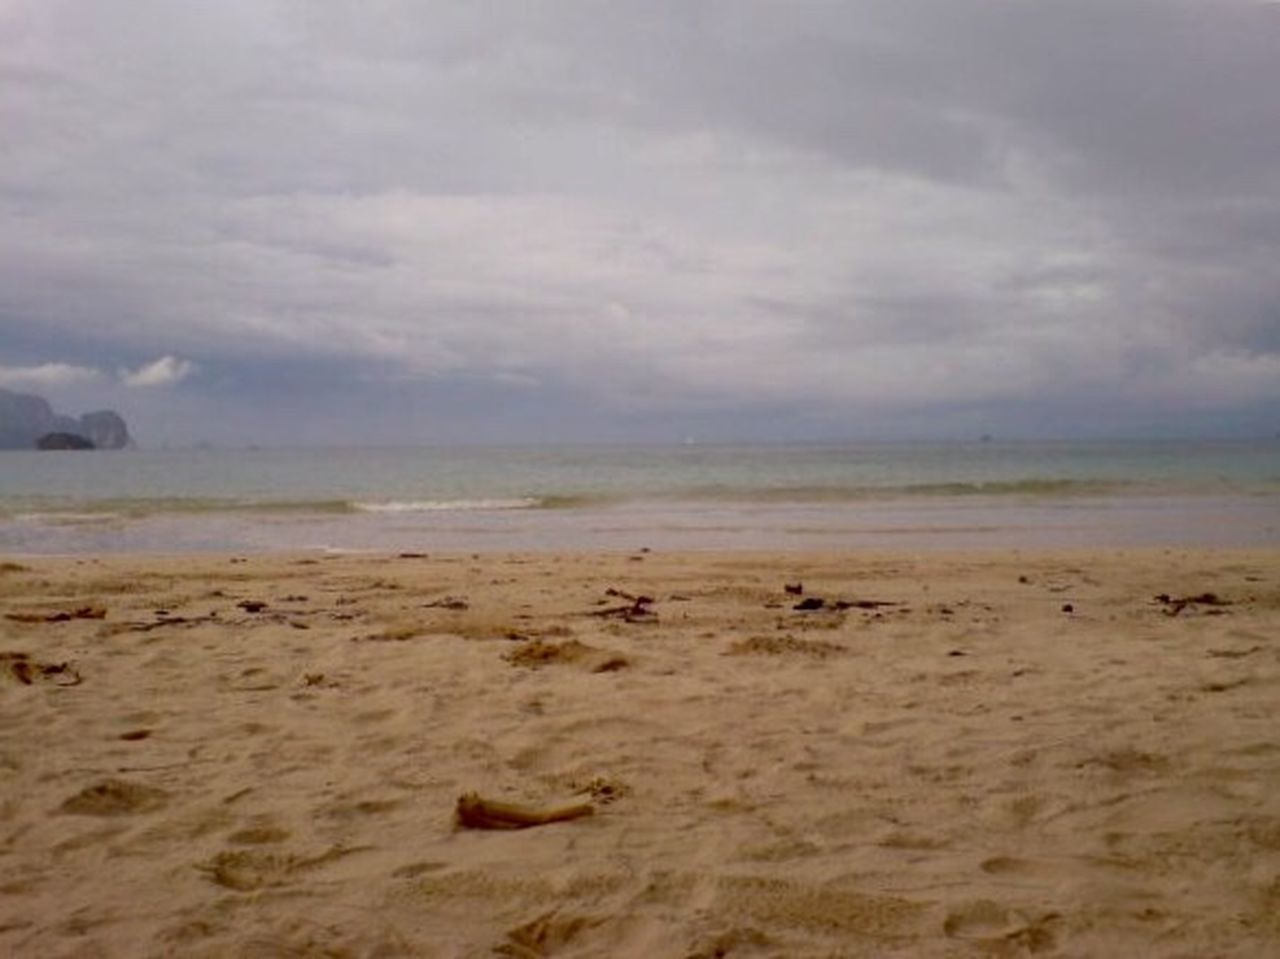 sea, beach, cloud - sky, sky, no people, nature, water, horizon over water, outdoors, tranquility, day, sand, scenics, beauty in nature, animal themes